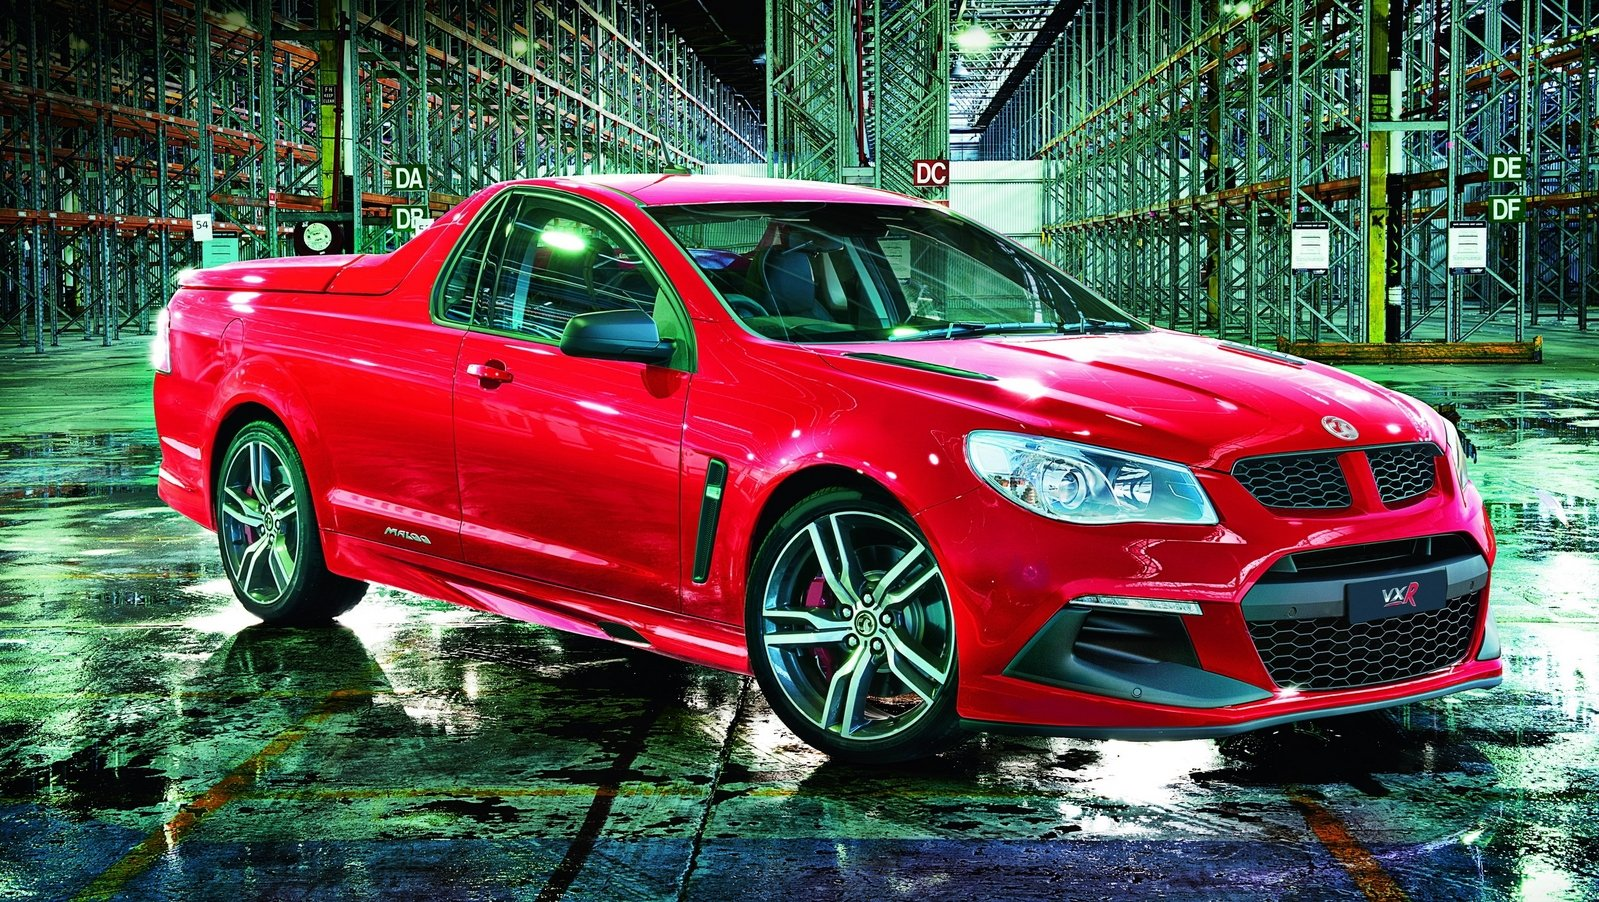 2016 Vauxhall Maloo LSA Review - Top Speed